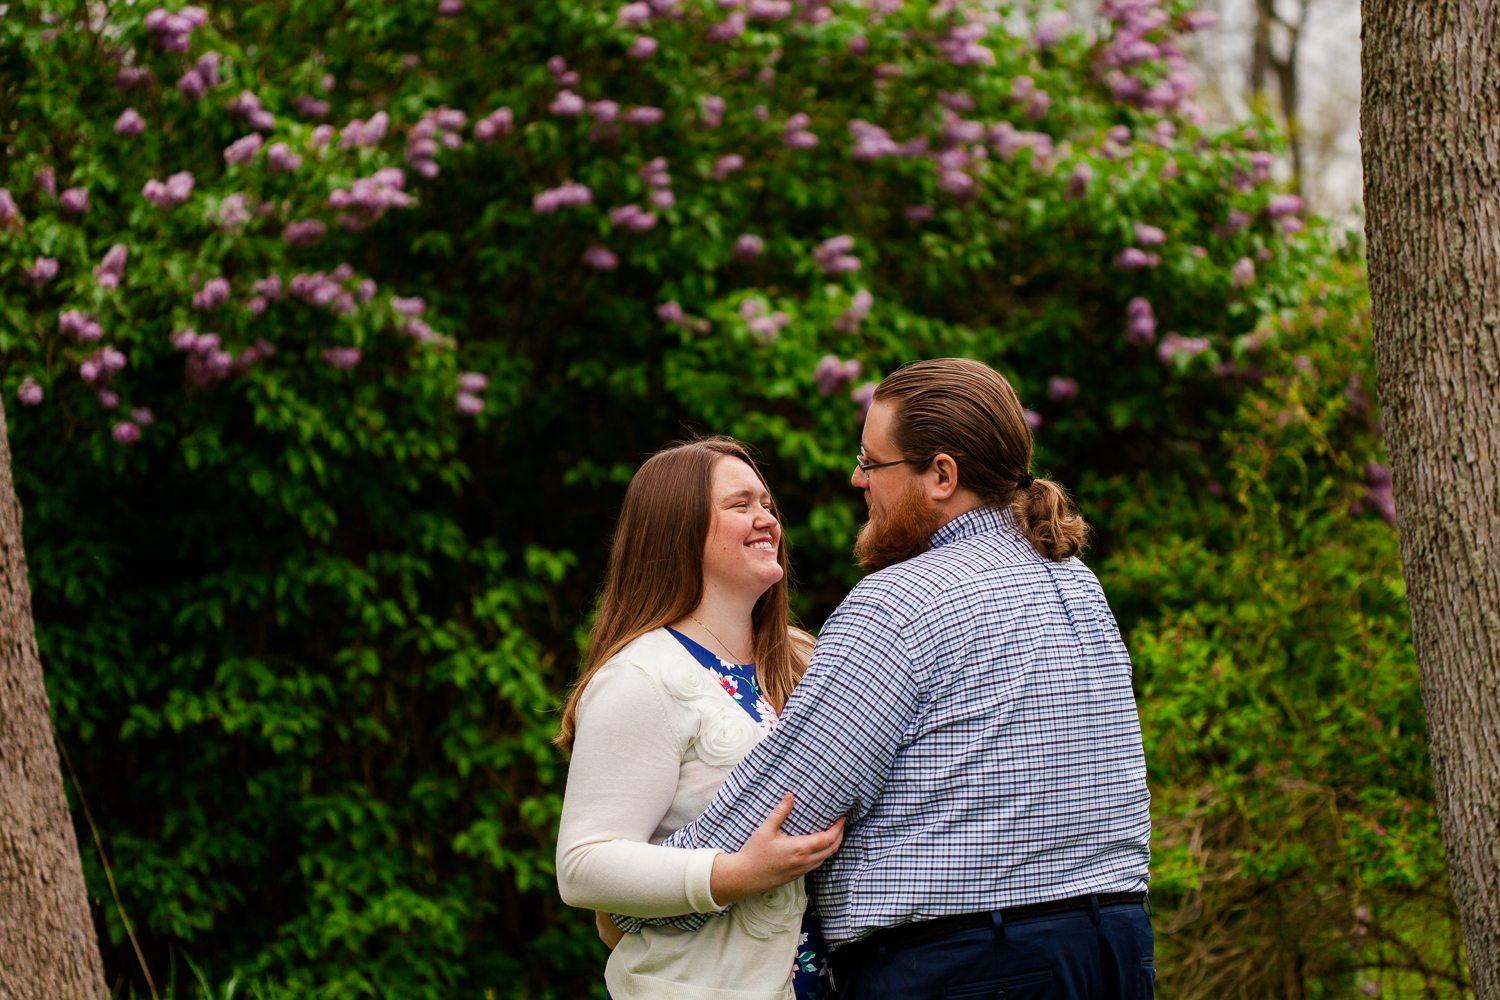 Woman smiles at man in front of lilac bush during engagement shoot.